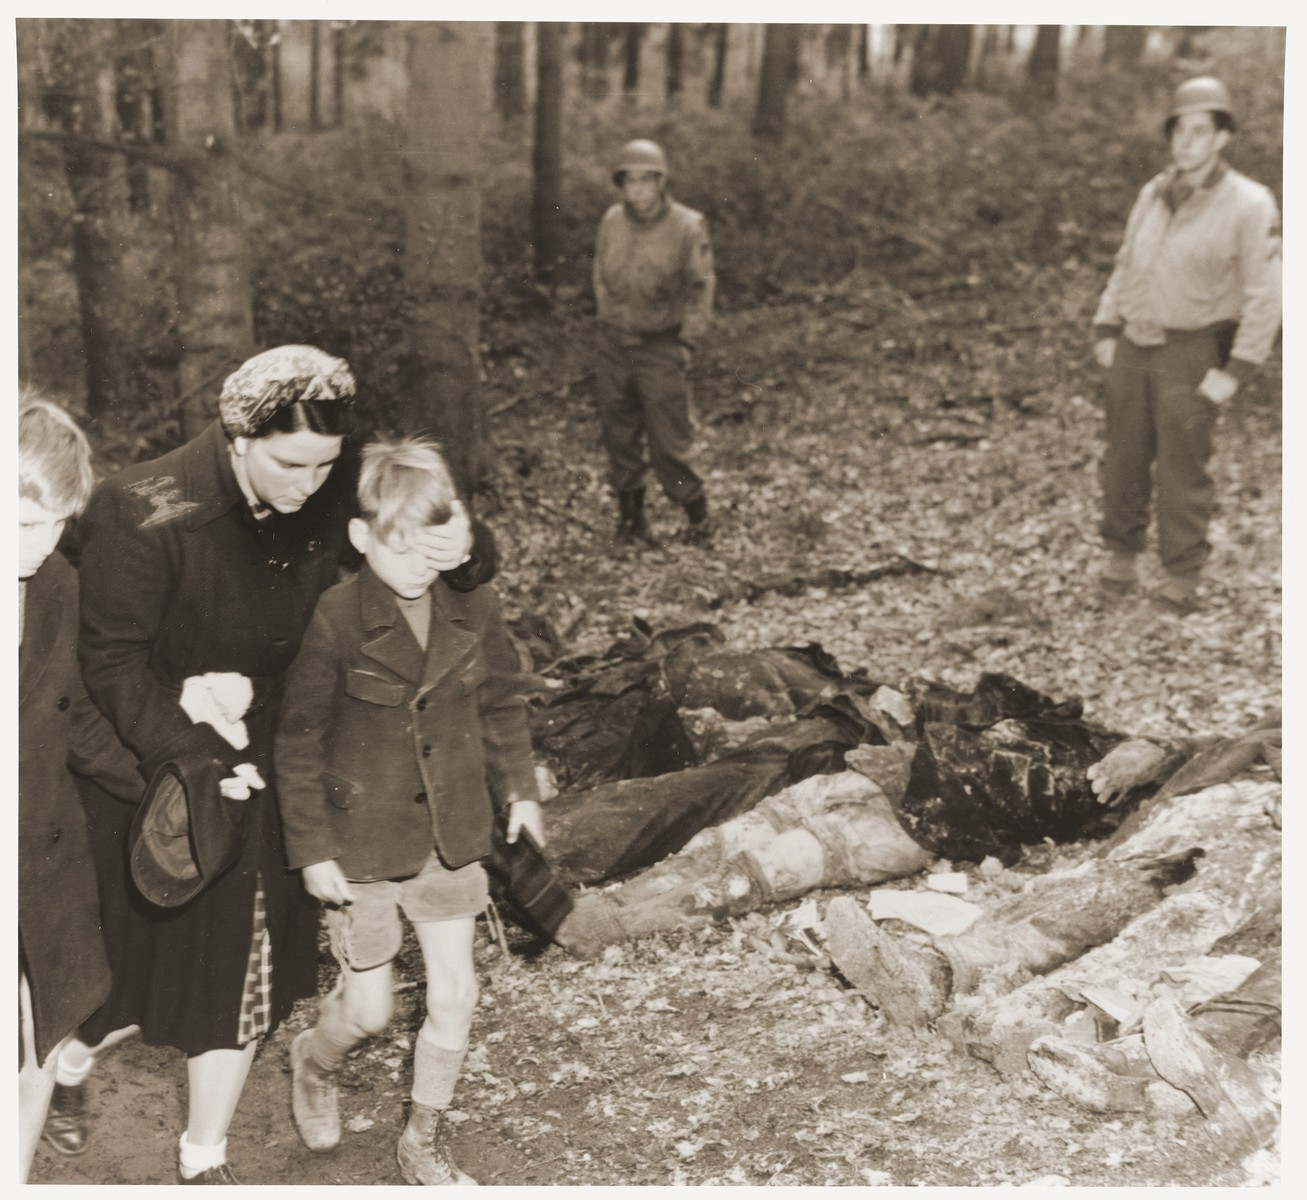 Under the supervision of American soldiers, a German mother shields the eyes of her son as she walks with other civilians past the bodies of 57 Russians, including women and one baby, exhumed from a mass grave outside the town of Suttrop.    The victims were forced to dig their own grave and then were shot by SS troops six weeks before the arrival of American troops.  On May 3, 1945, the 95th Infantry Division of the U.S. Ninth Army arrived in Suttrop and were informed by locals of the mass grave.  American troops forced the townspeople to exhume the grave after which Russian displaced persons in the area identified the bodies.  The victims were reburied in individual graves, and a U.S. Army chaplain conducted burial services.  Russians remaining in the area placed wreaths on the graves.